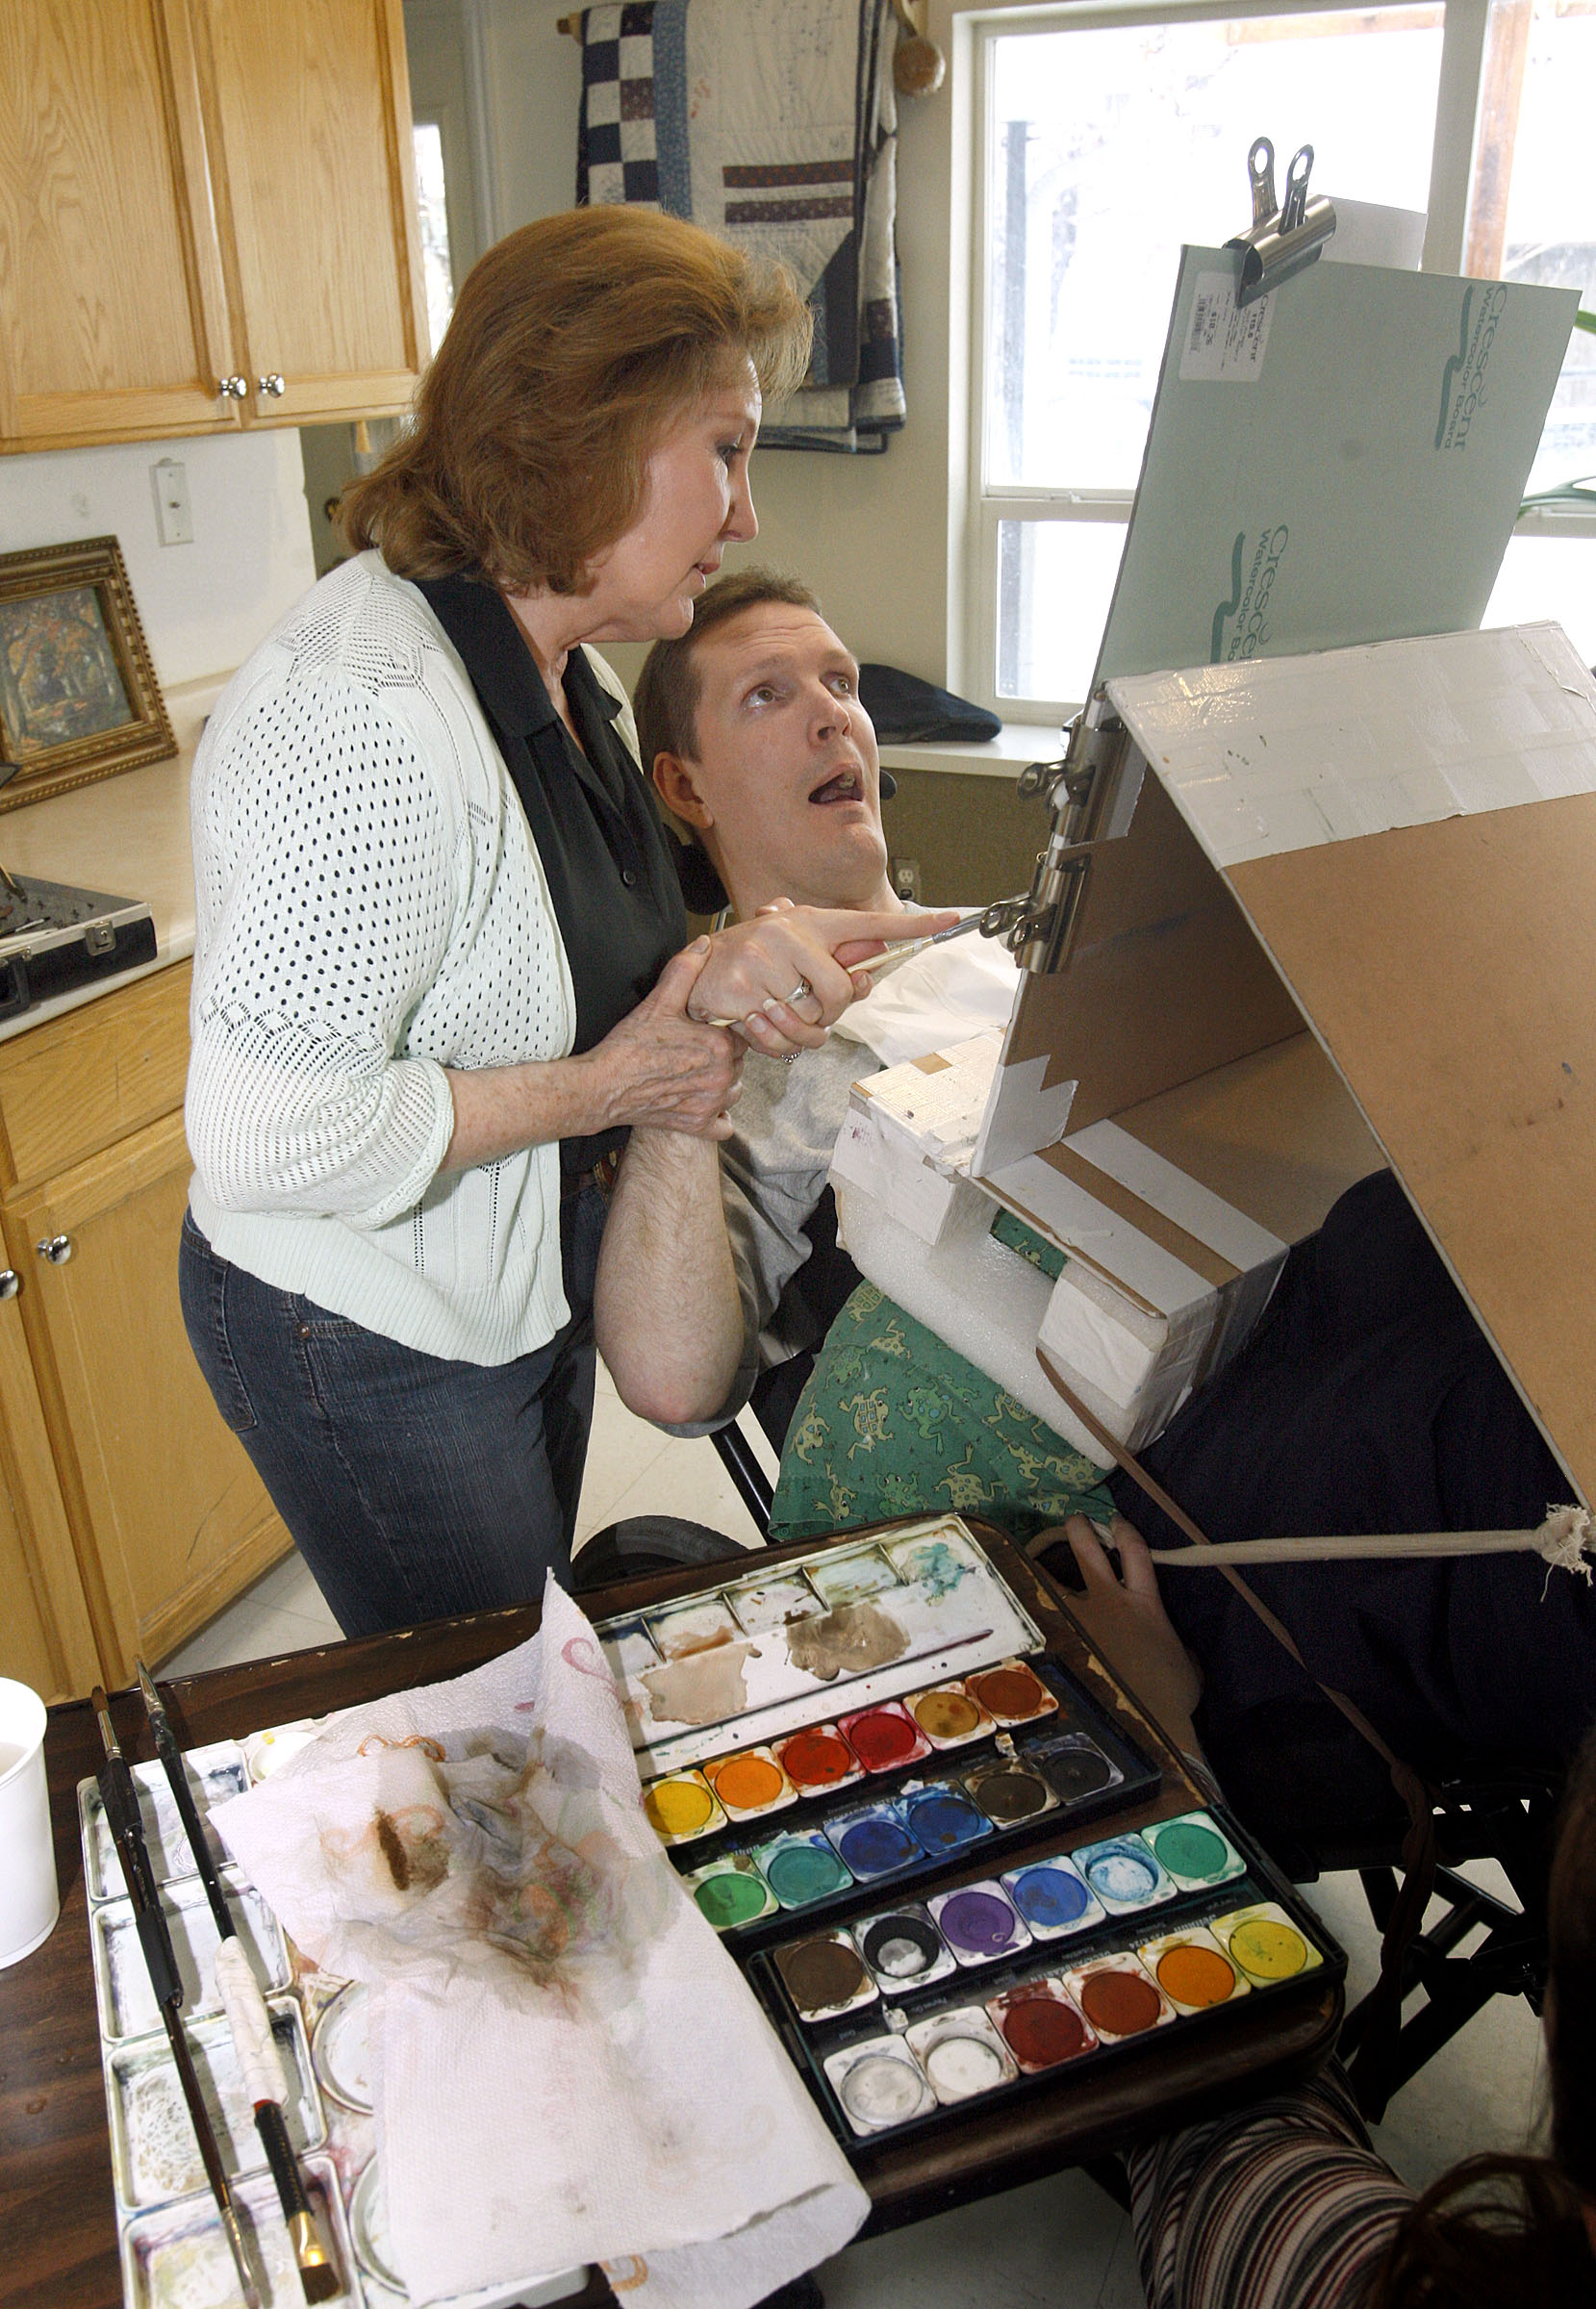 Carol Harding helps Orin Voorheis paint a water color painting of his parents. Harding holds his arm up and shows him where to paint, but Voorheis makes the strokes and chooses the colors he wants to use in his paintings.